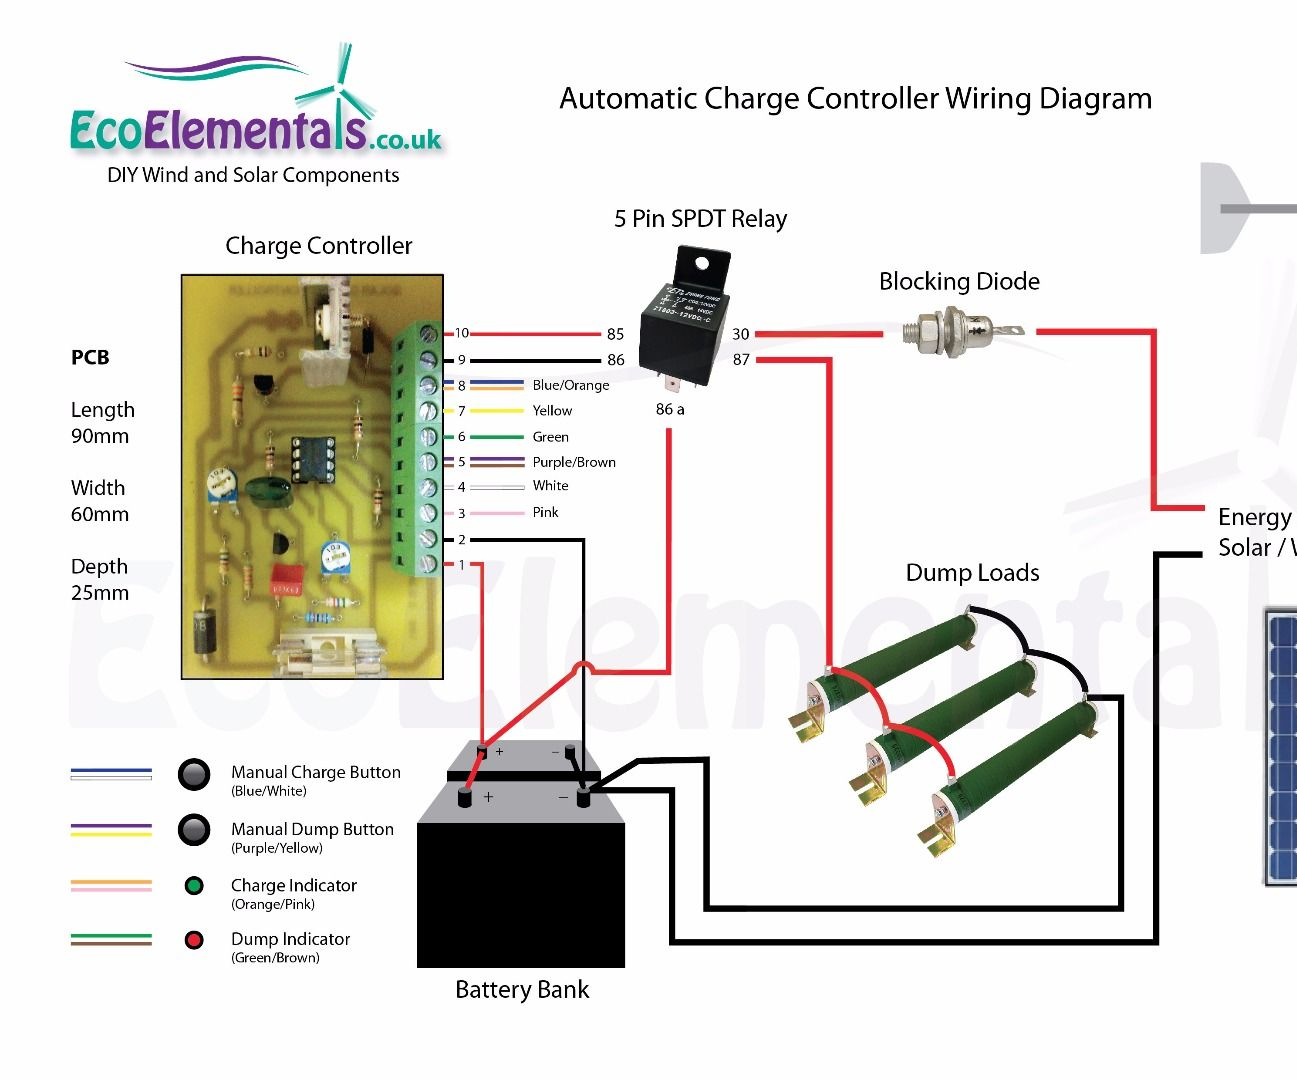 hight resolution of charge controller wiring diagram for diy wind turbine or solar panels victron solar charge controller wiring diagram solar controller wiring diagram